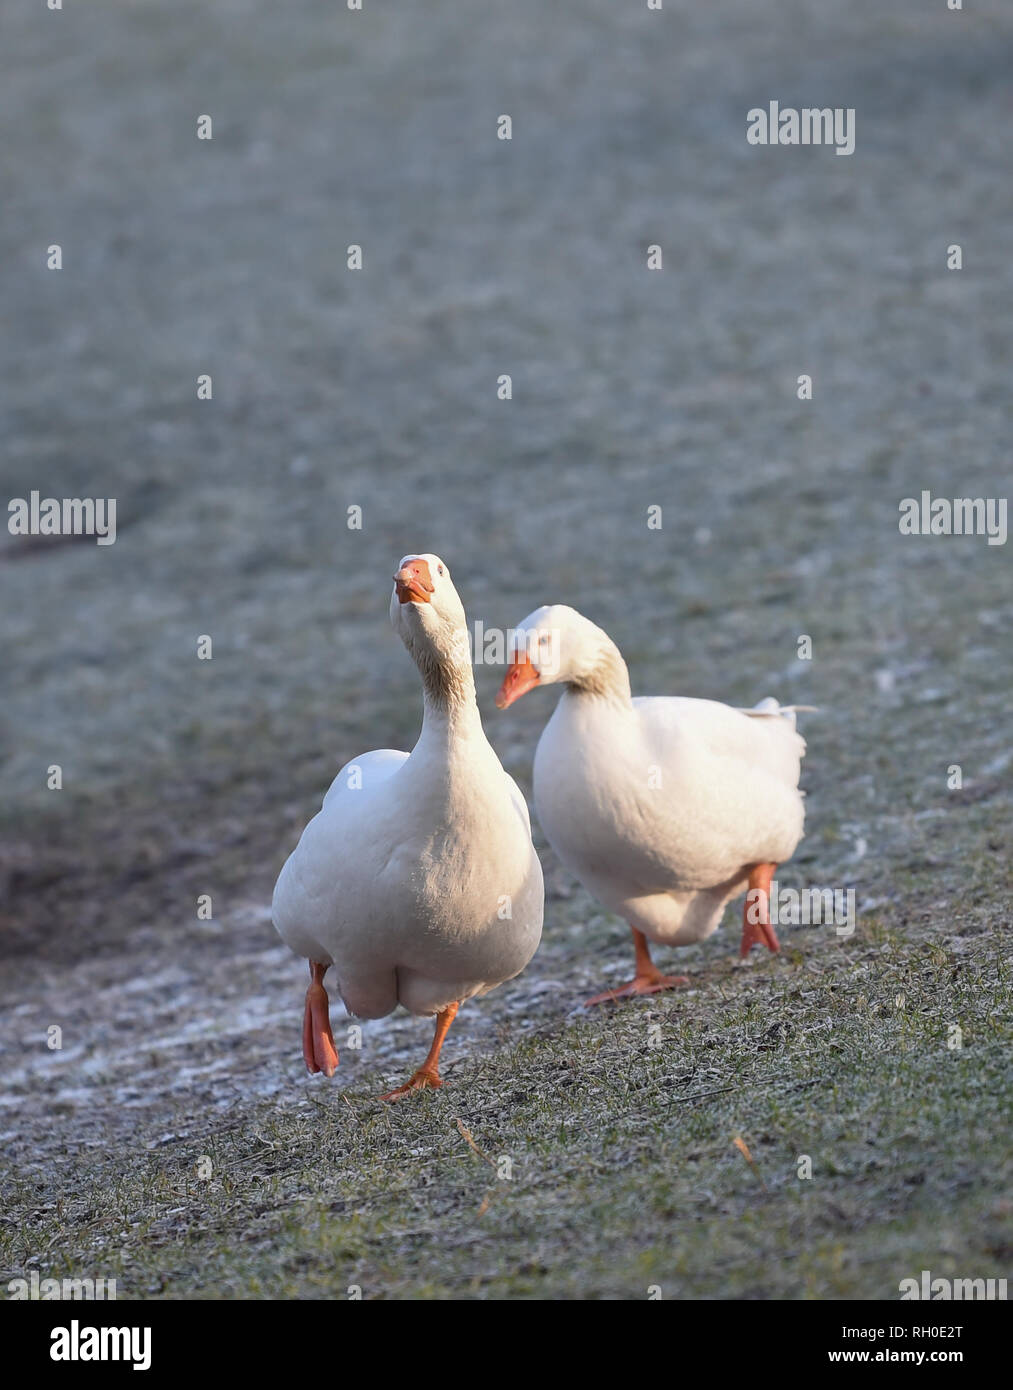 Brighton, UK. 31st Jan, 2019. UK Weather: Geese hunt for food in Queens Park Brighton on a frosty and icy morning after the coldest evening in Britain with extra low temperatures recorded around the country . Heavy snow and freezing weather are forecast for rush hour in the south east later today Credit: Simon Dack/Alamy Live News - Stock Image